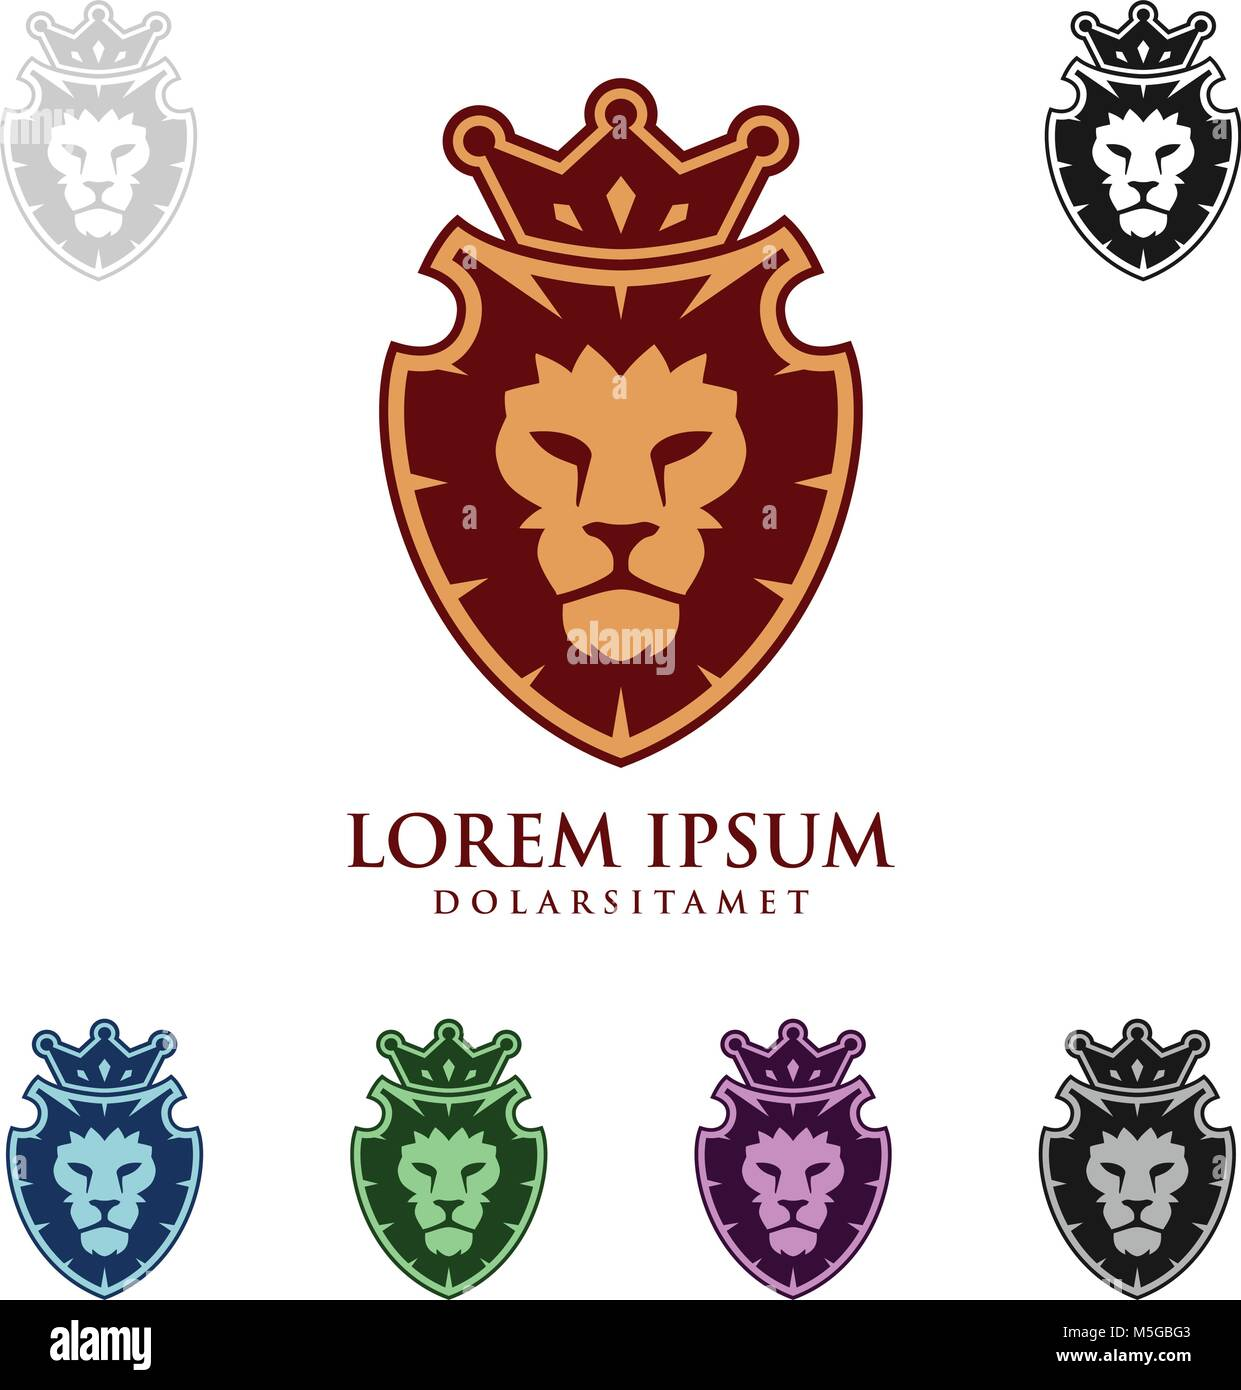 King Crown Logo Template Stockfotos & King Crown Logo Template ...